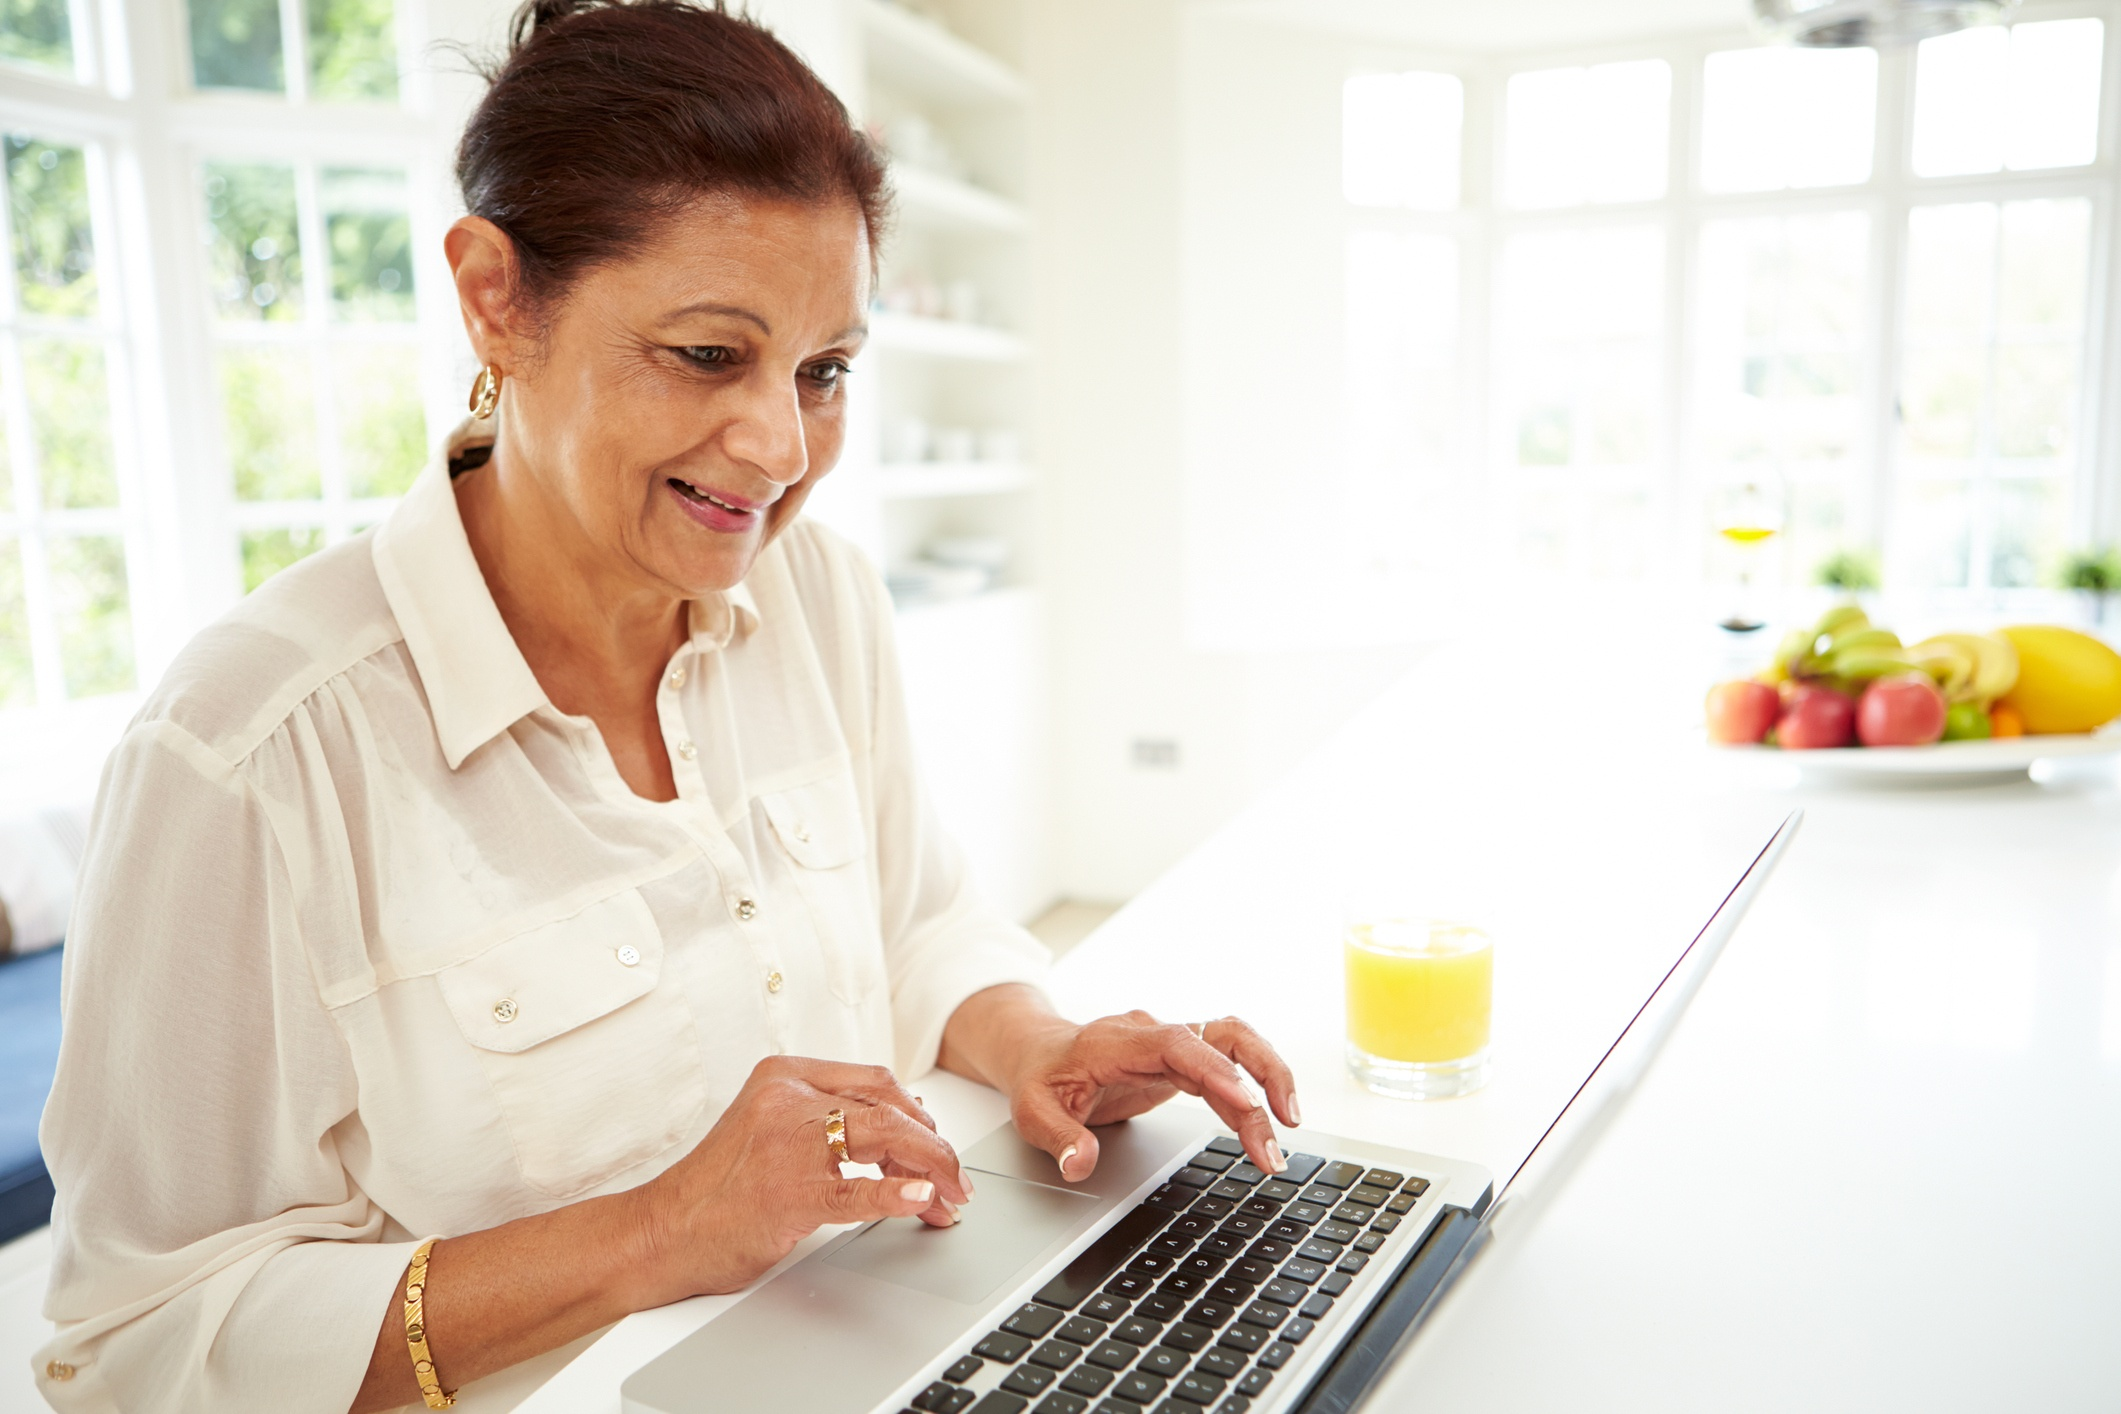 Best Elder Care and Senior Living Blogs: 50 Must-Read Blogs for Older Adults, Family Caregivers, and More